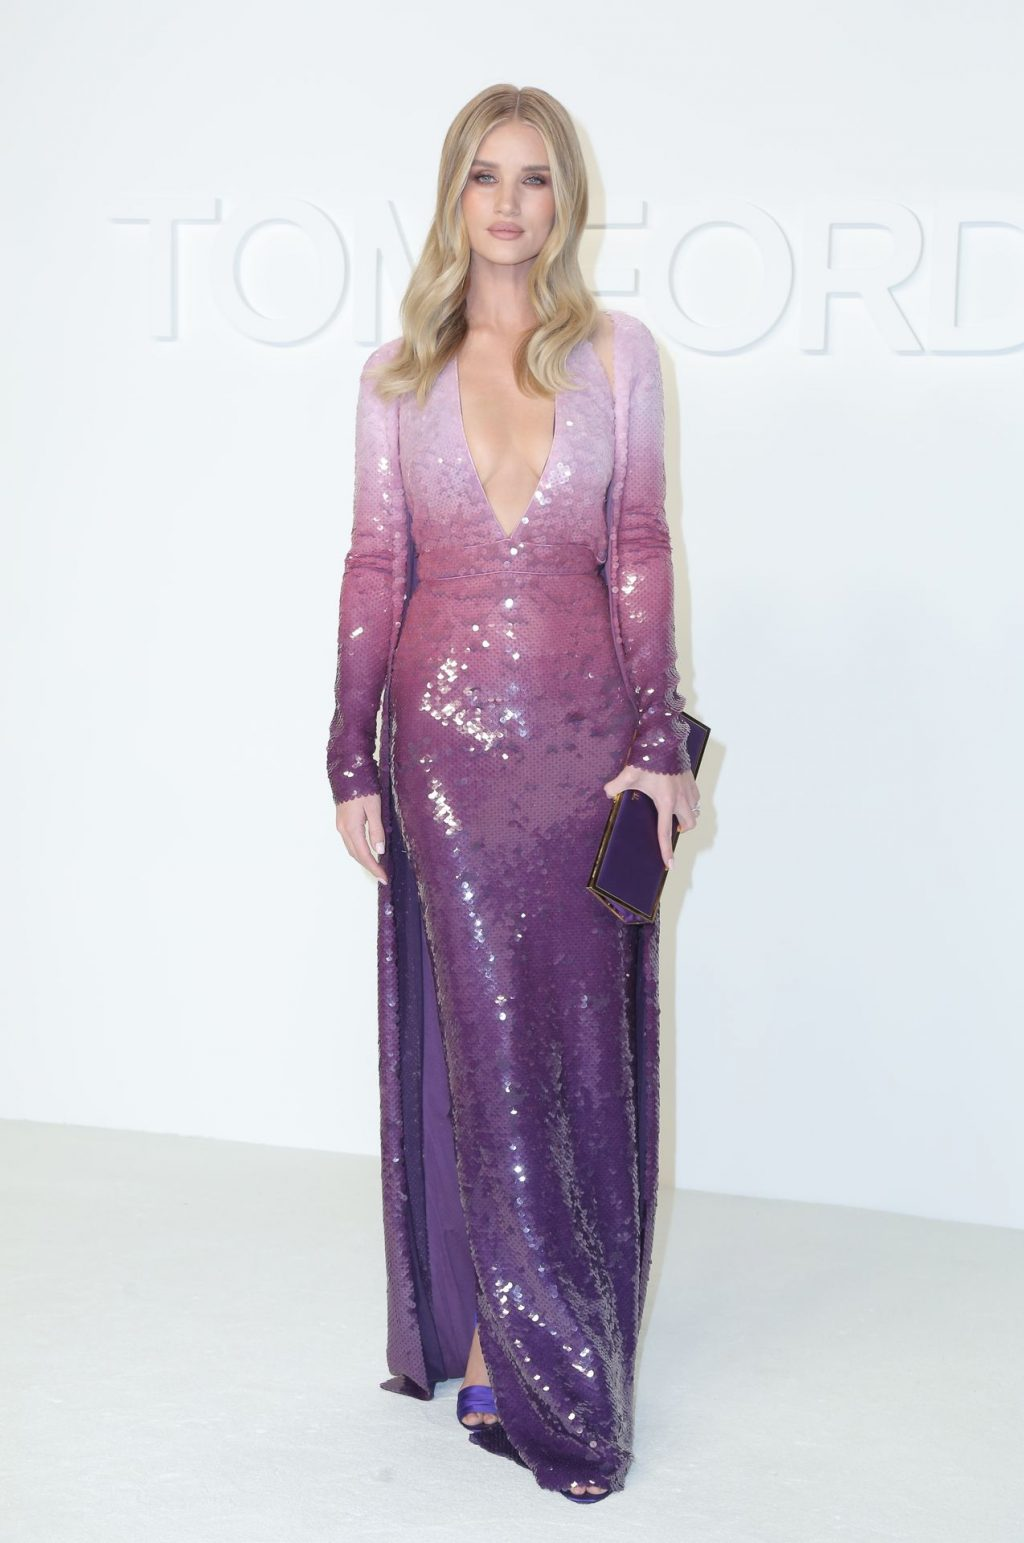 Rosie Huntington Whiteley Sexy The Fappening Blog 56 1024x1543 - Rosie Huntington-Whiteley Shows Her Cleavage at the Tom Ford Fashion Show (115 Photos)